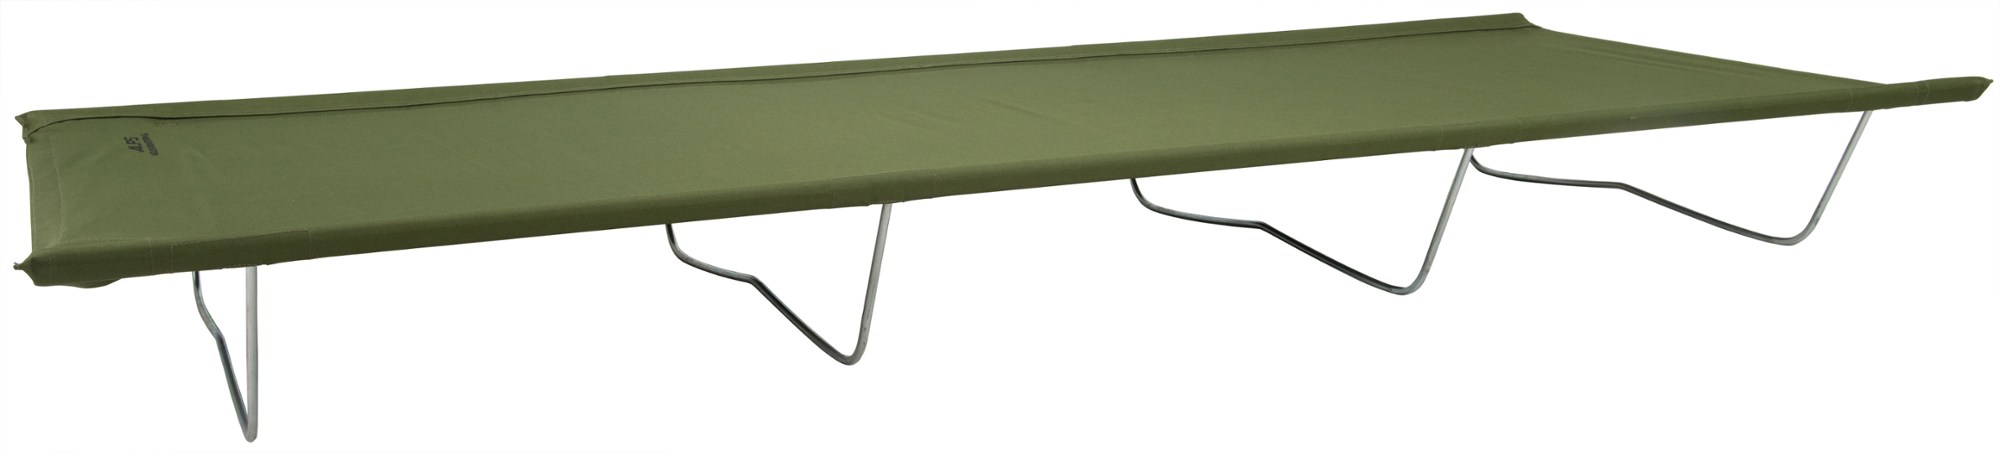 ALPS Mountaineering Lightweight Camping Cot